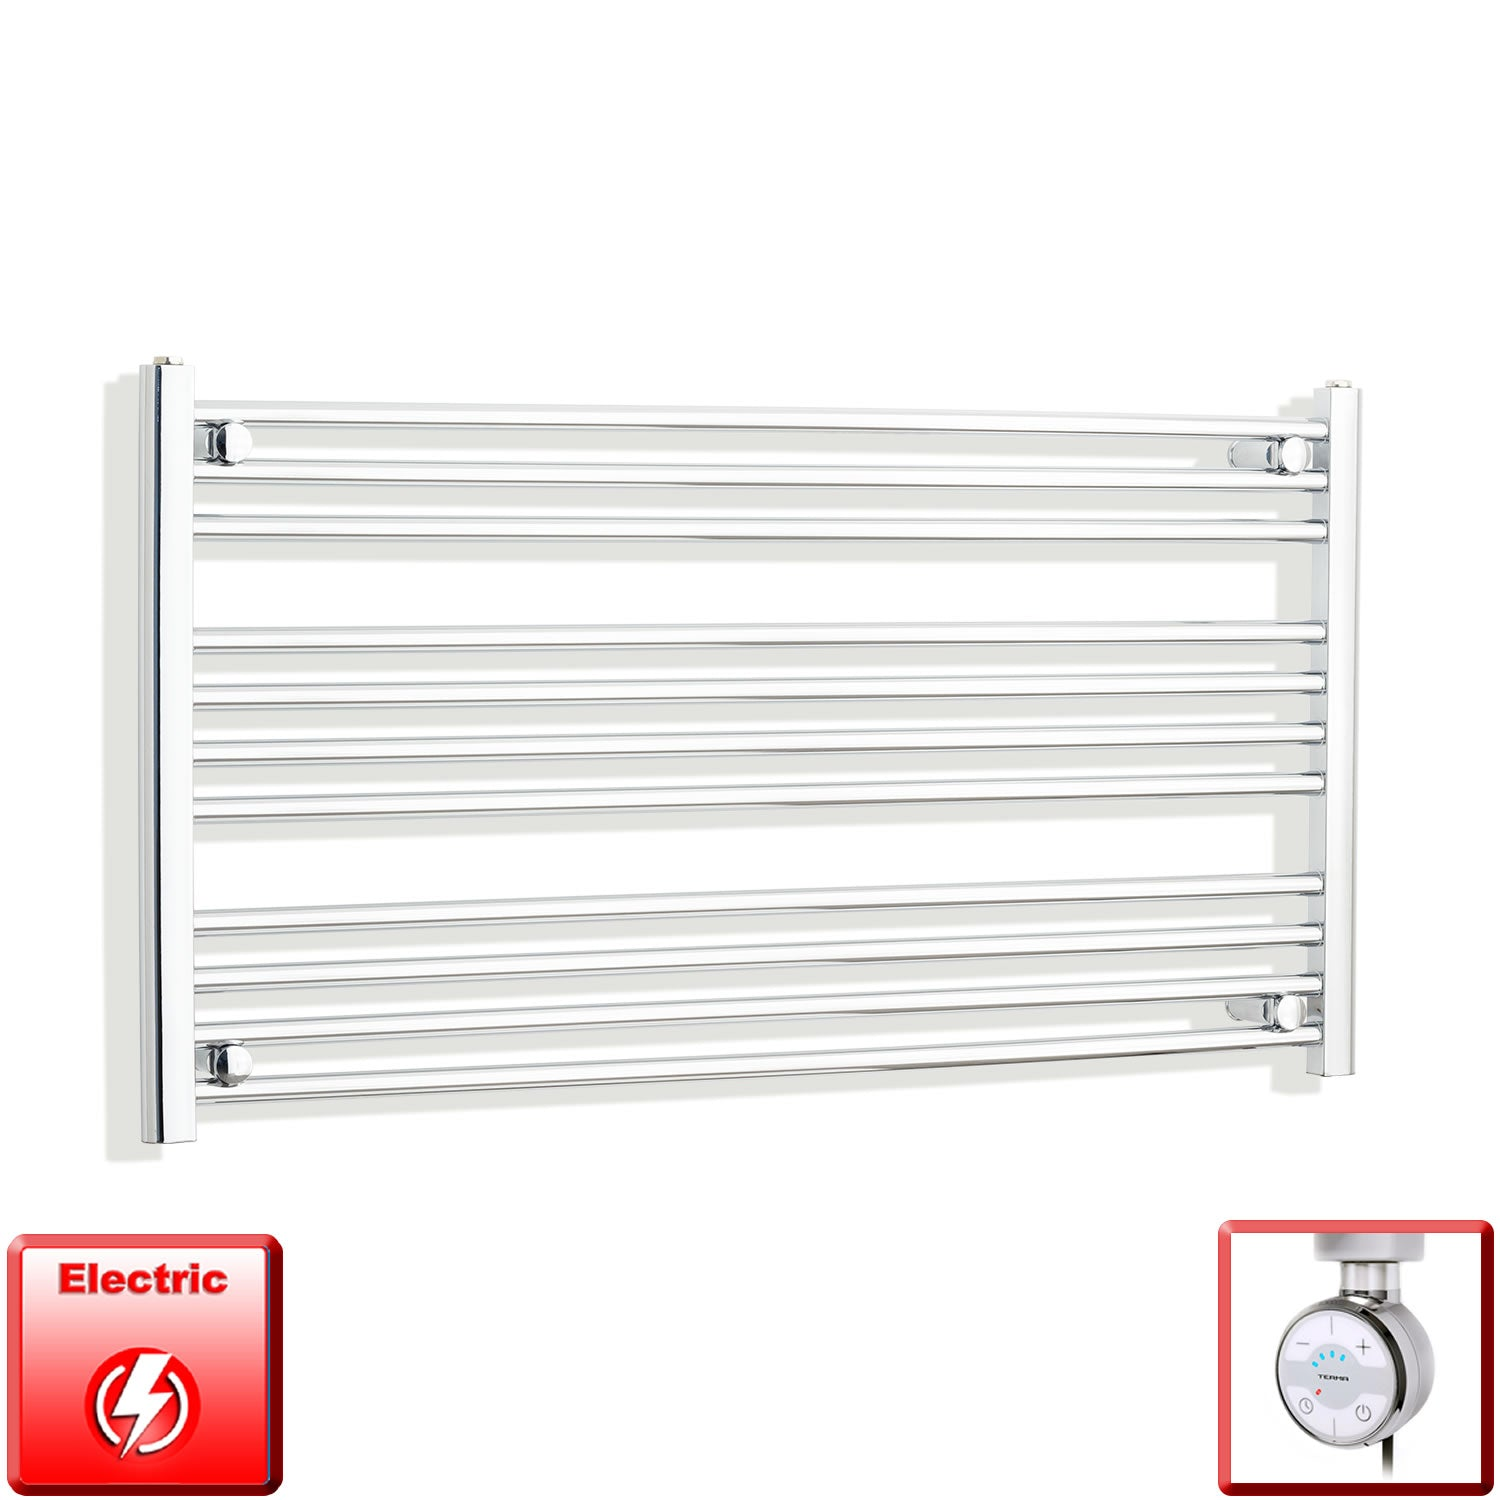 1300mm Wide 600mm High Flat Chrome Pre-Filled Electric Heated Towel Rail Radiator HTR,MOA Thermostatic Element